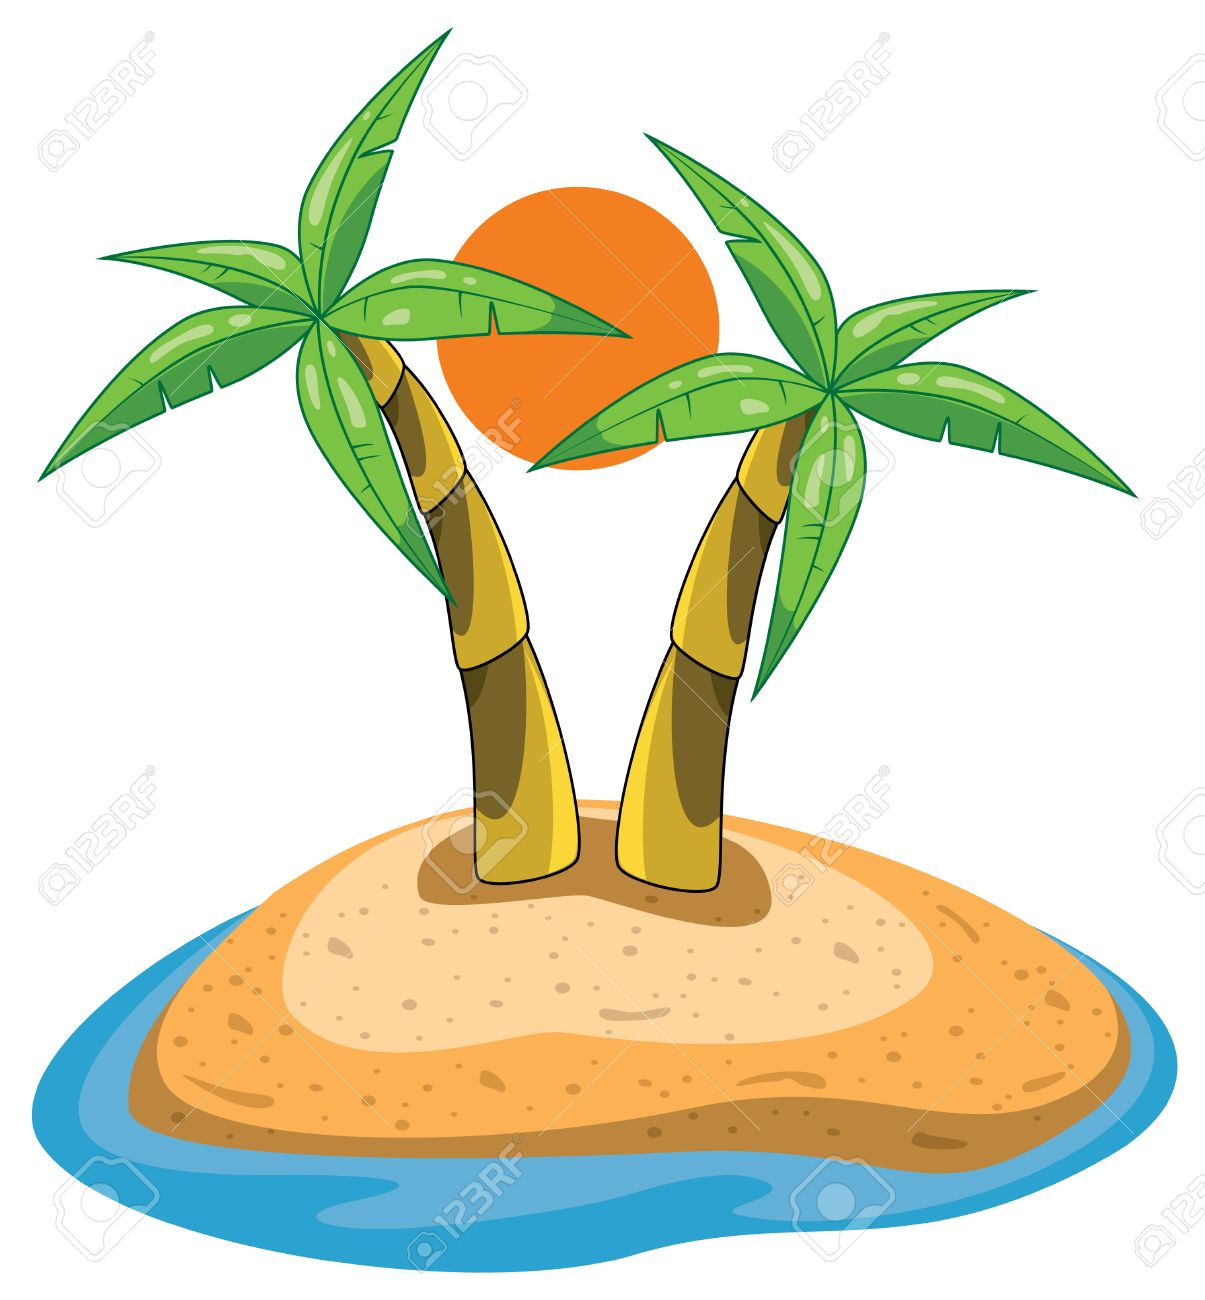 palms on island clip art royalty free cliparts vectors and stock rh 123rf com iceland clip art island clipart png